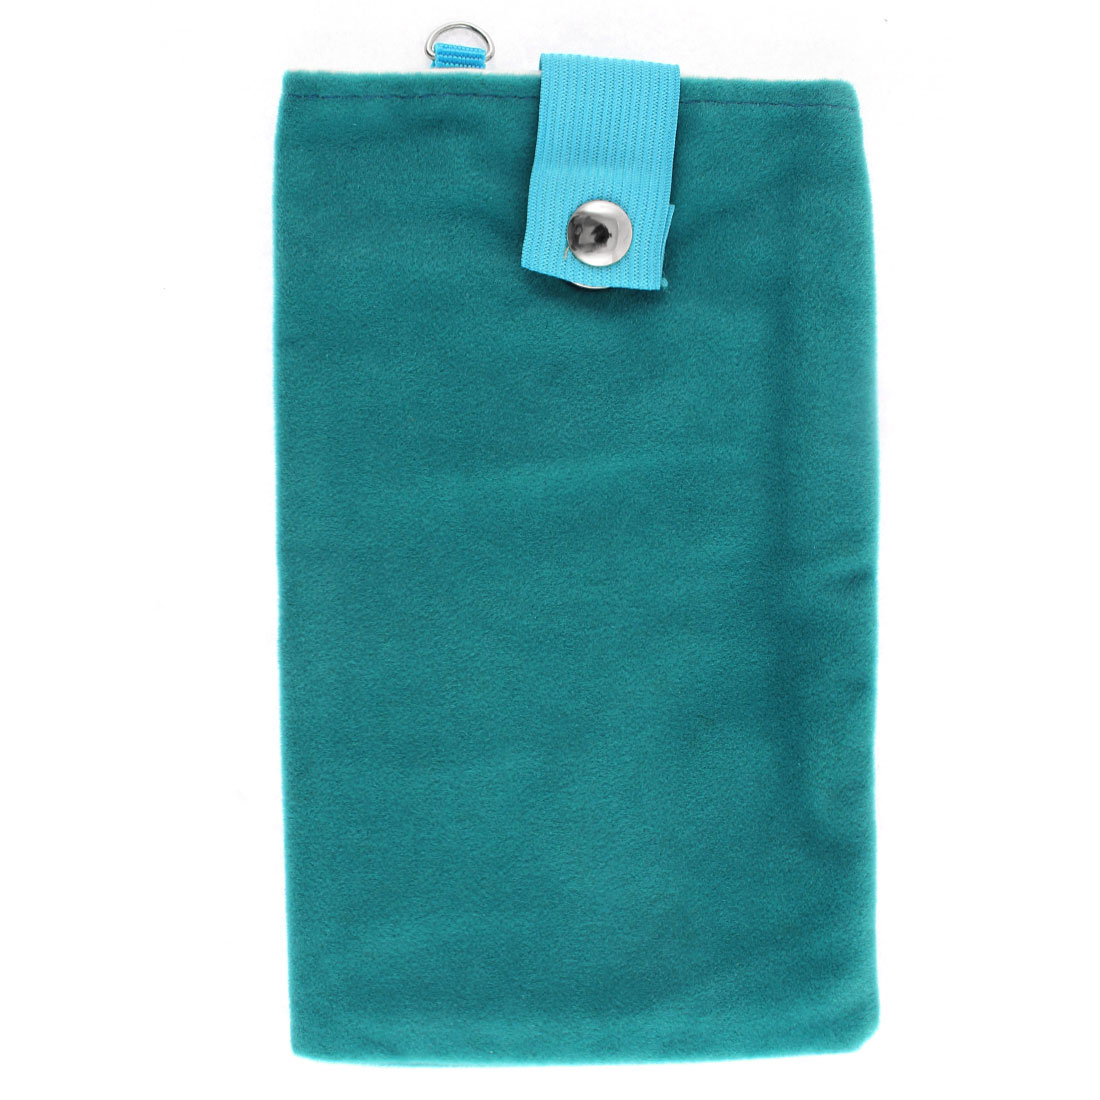 Velvet Dual Layer Magnetic Clasp Button Cell Phone Pouch Sleeve Bag Teal Blue